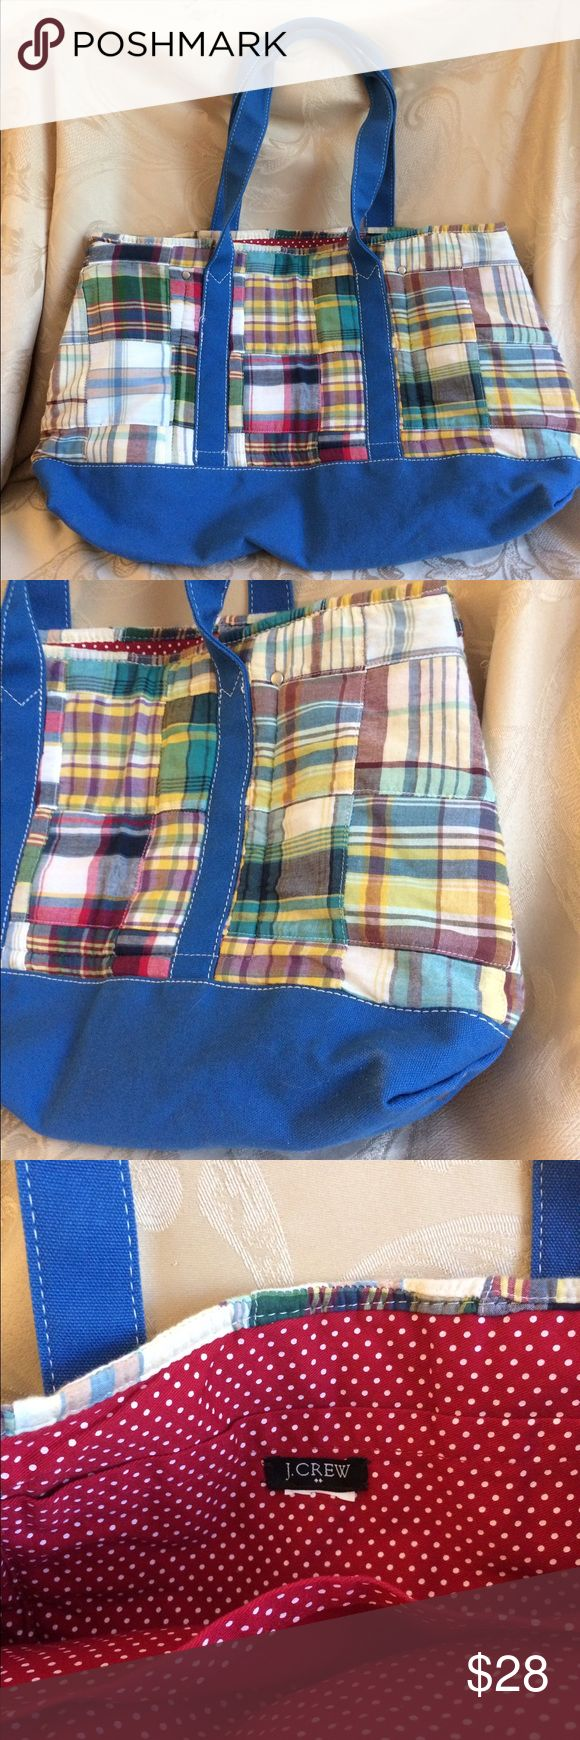 J Crew Tote Bag Cute Madras JCrew Tote Bag*Great for beach or pool. Excellent Condition. No rips or tears. J. Crew Bags Totes